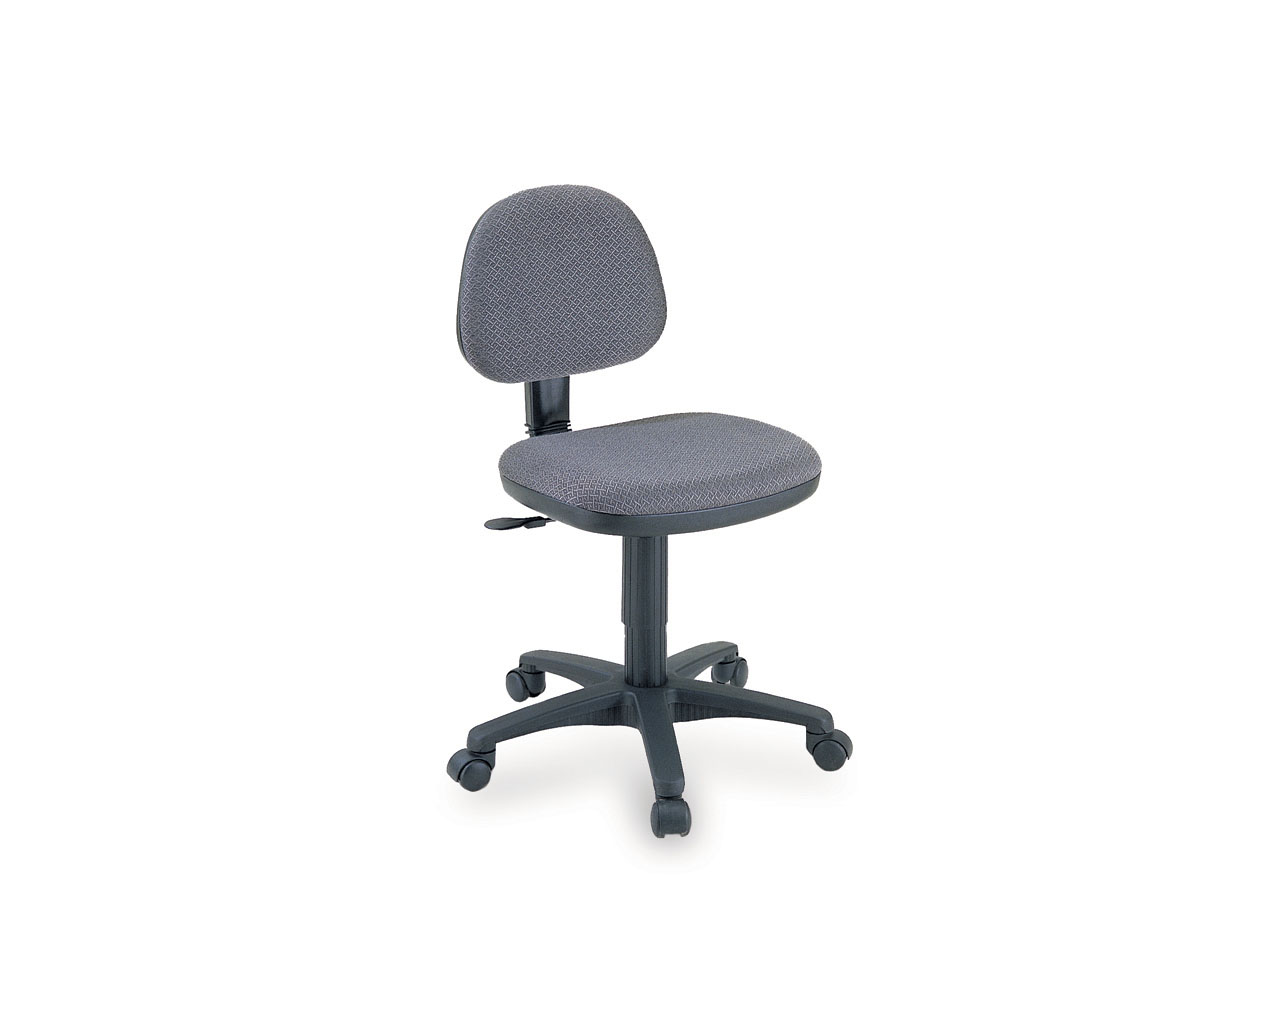 office chair kelowna rp module chairs and seating ergonomic desk